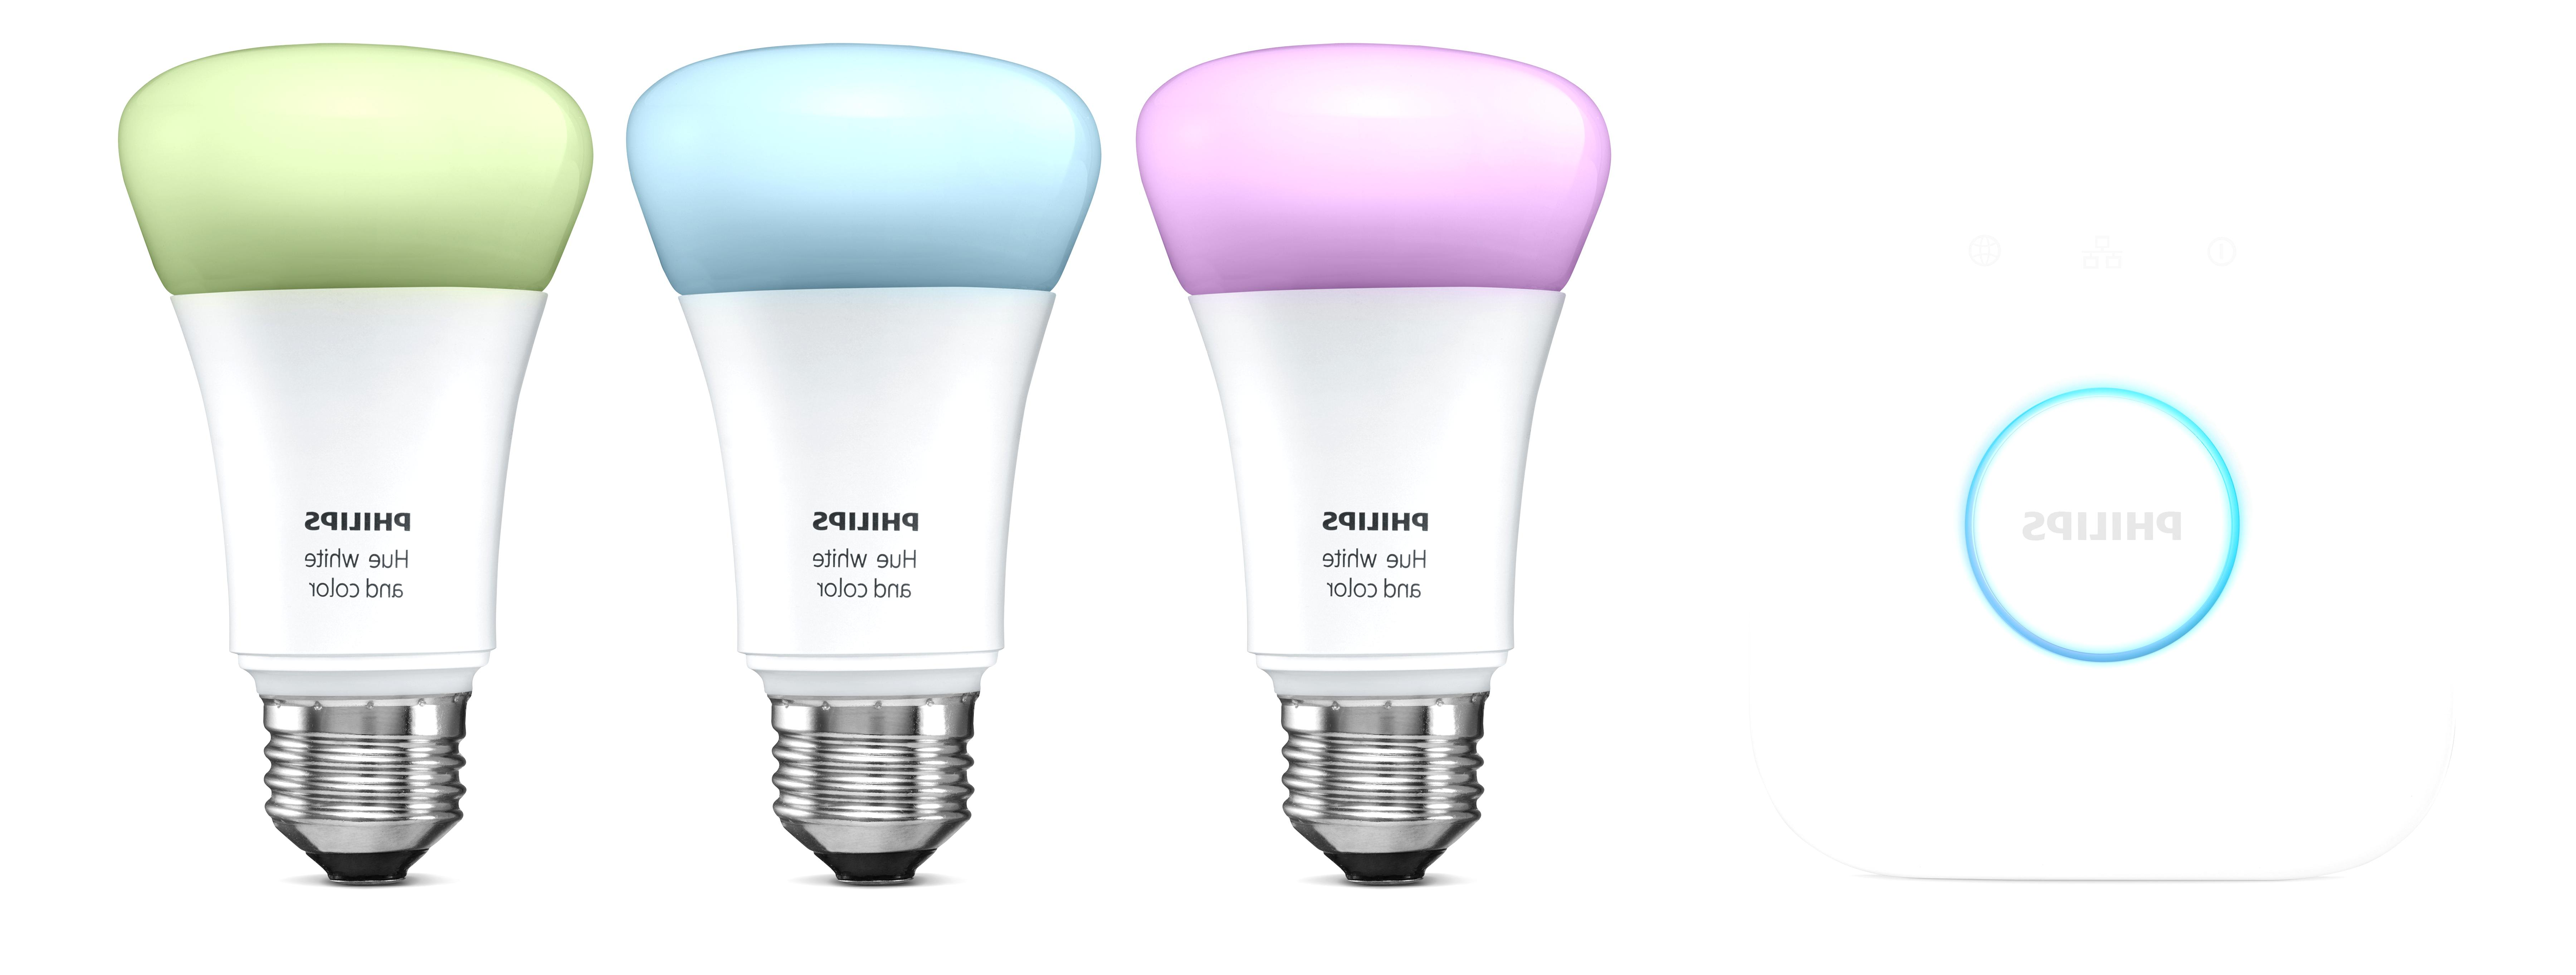 hue philips d'occasion